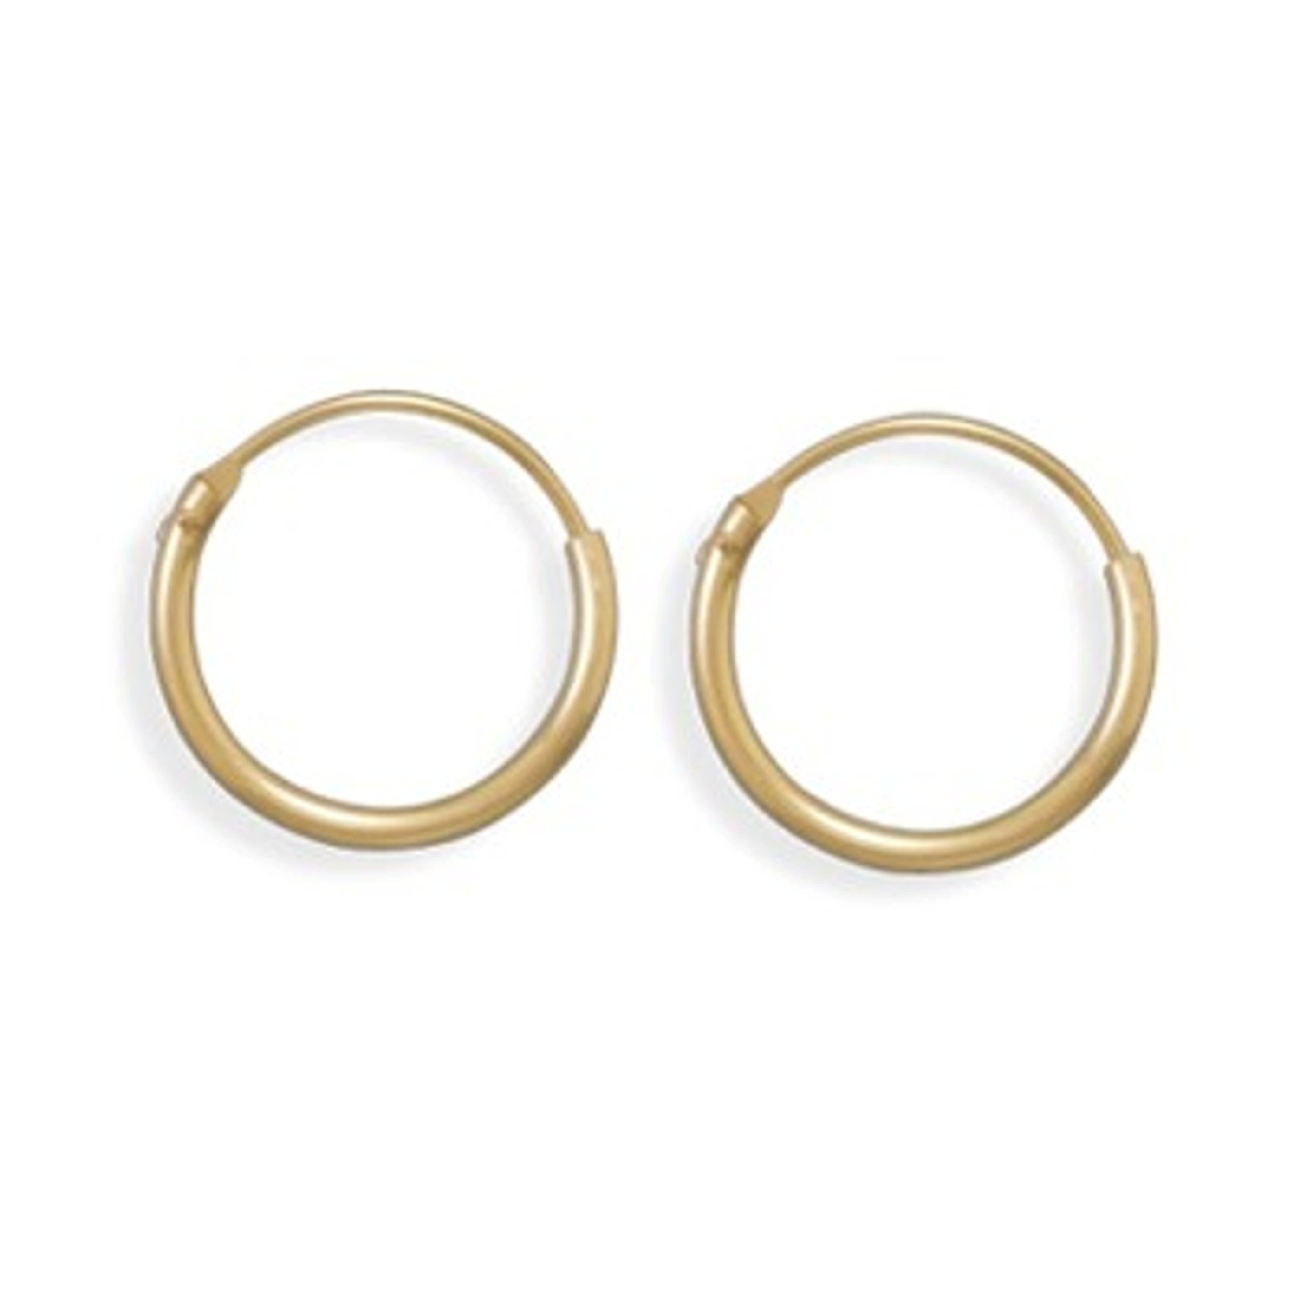 15mm Diameter 12/20 Gold Filled Endless Hoop Earrings